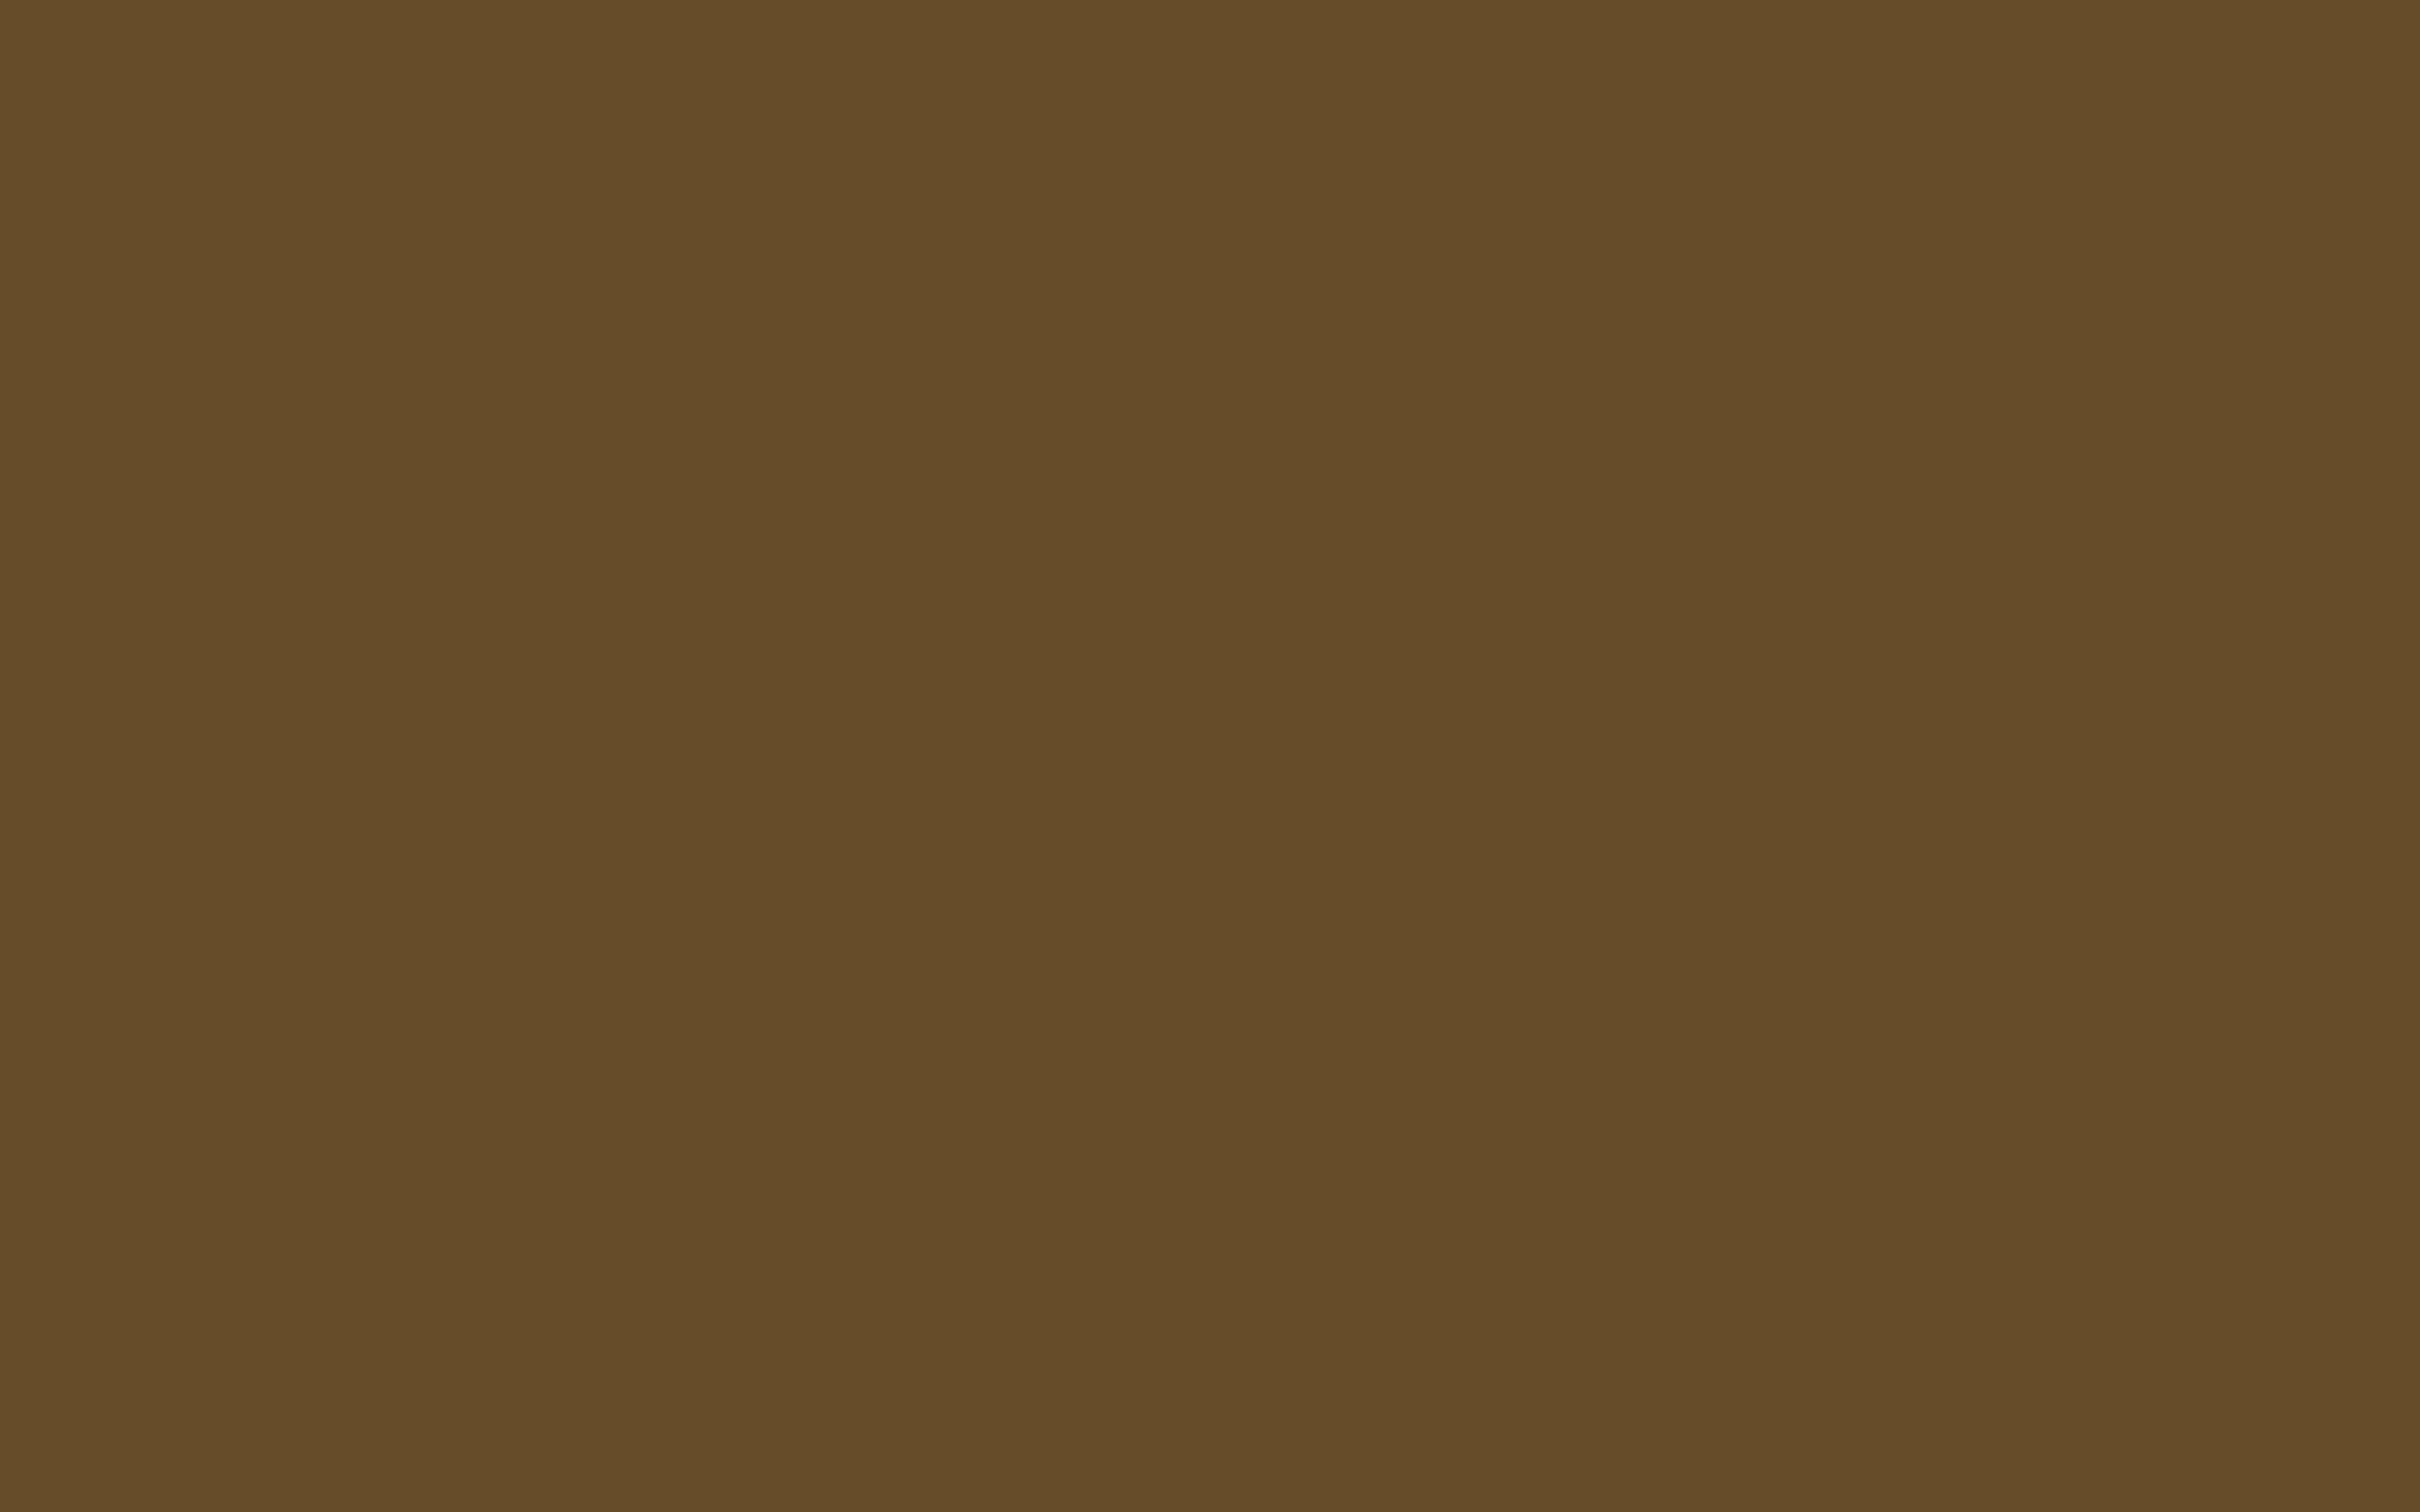 2560x1600 Donkey Brown Solid Color Background